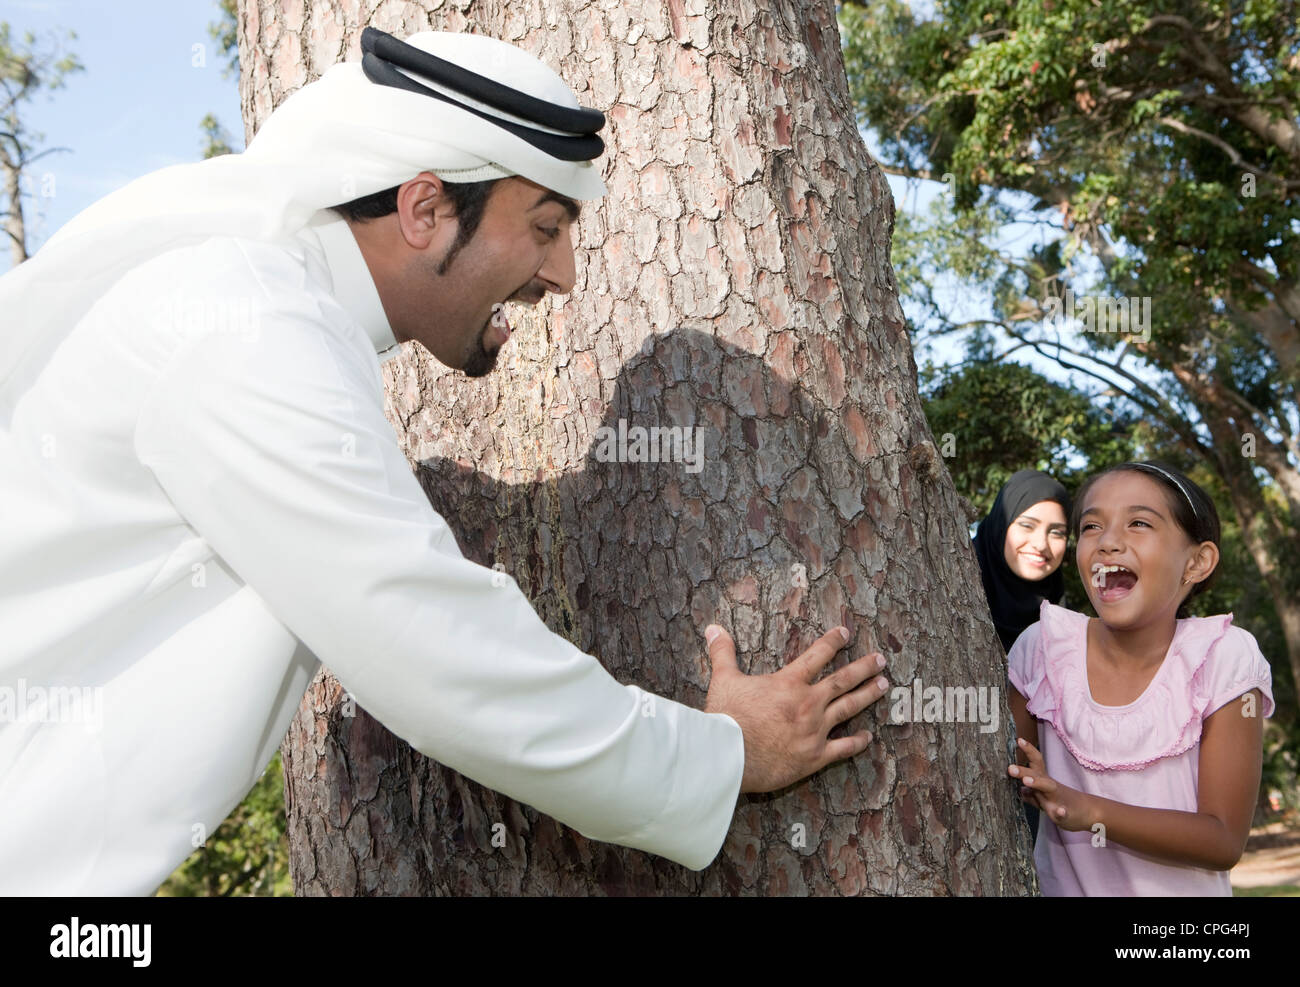 Arab family playing hide and seek in the park. Stock Photo